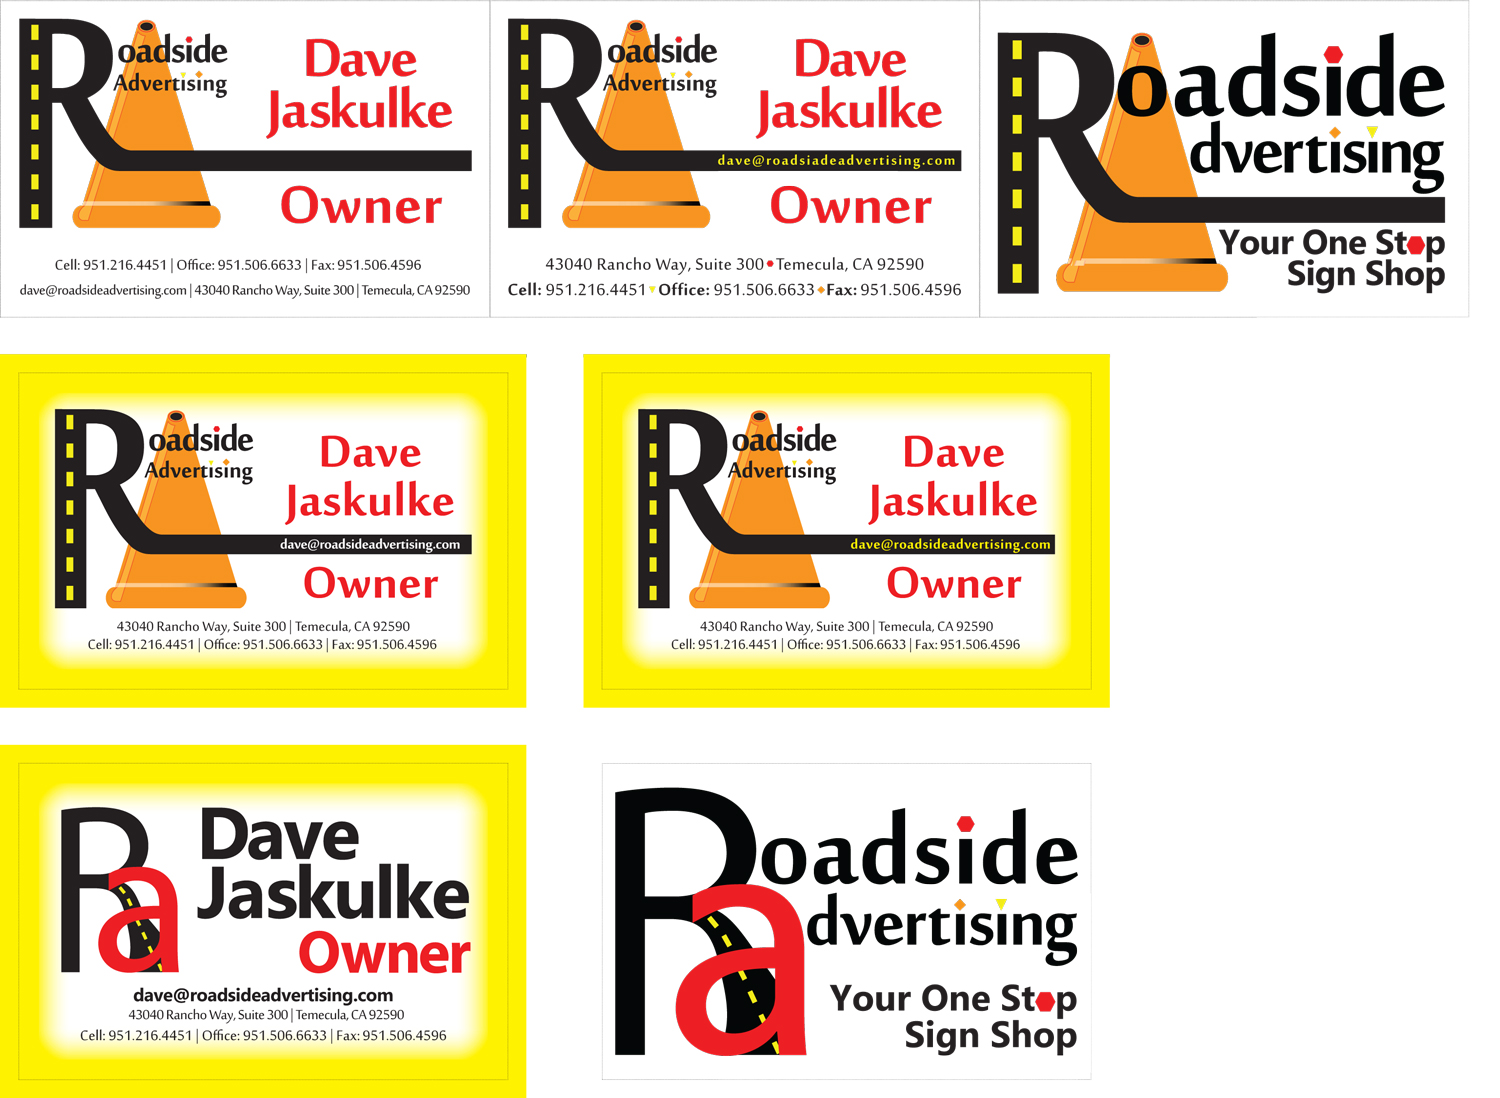 Roadside Advertising Business Cards